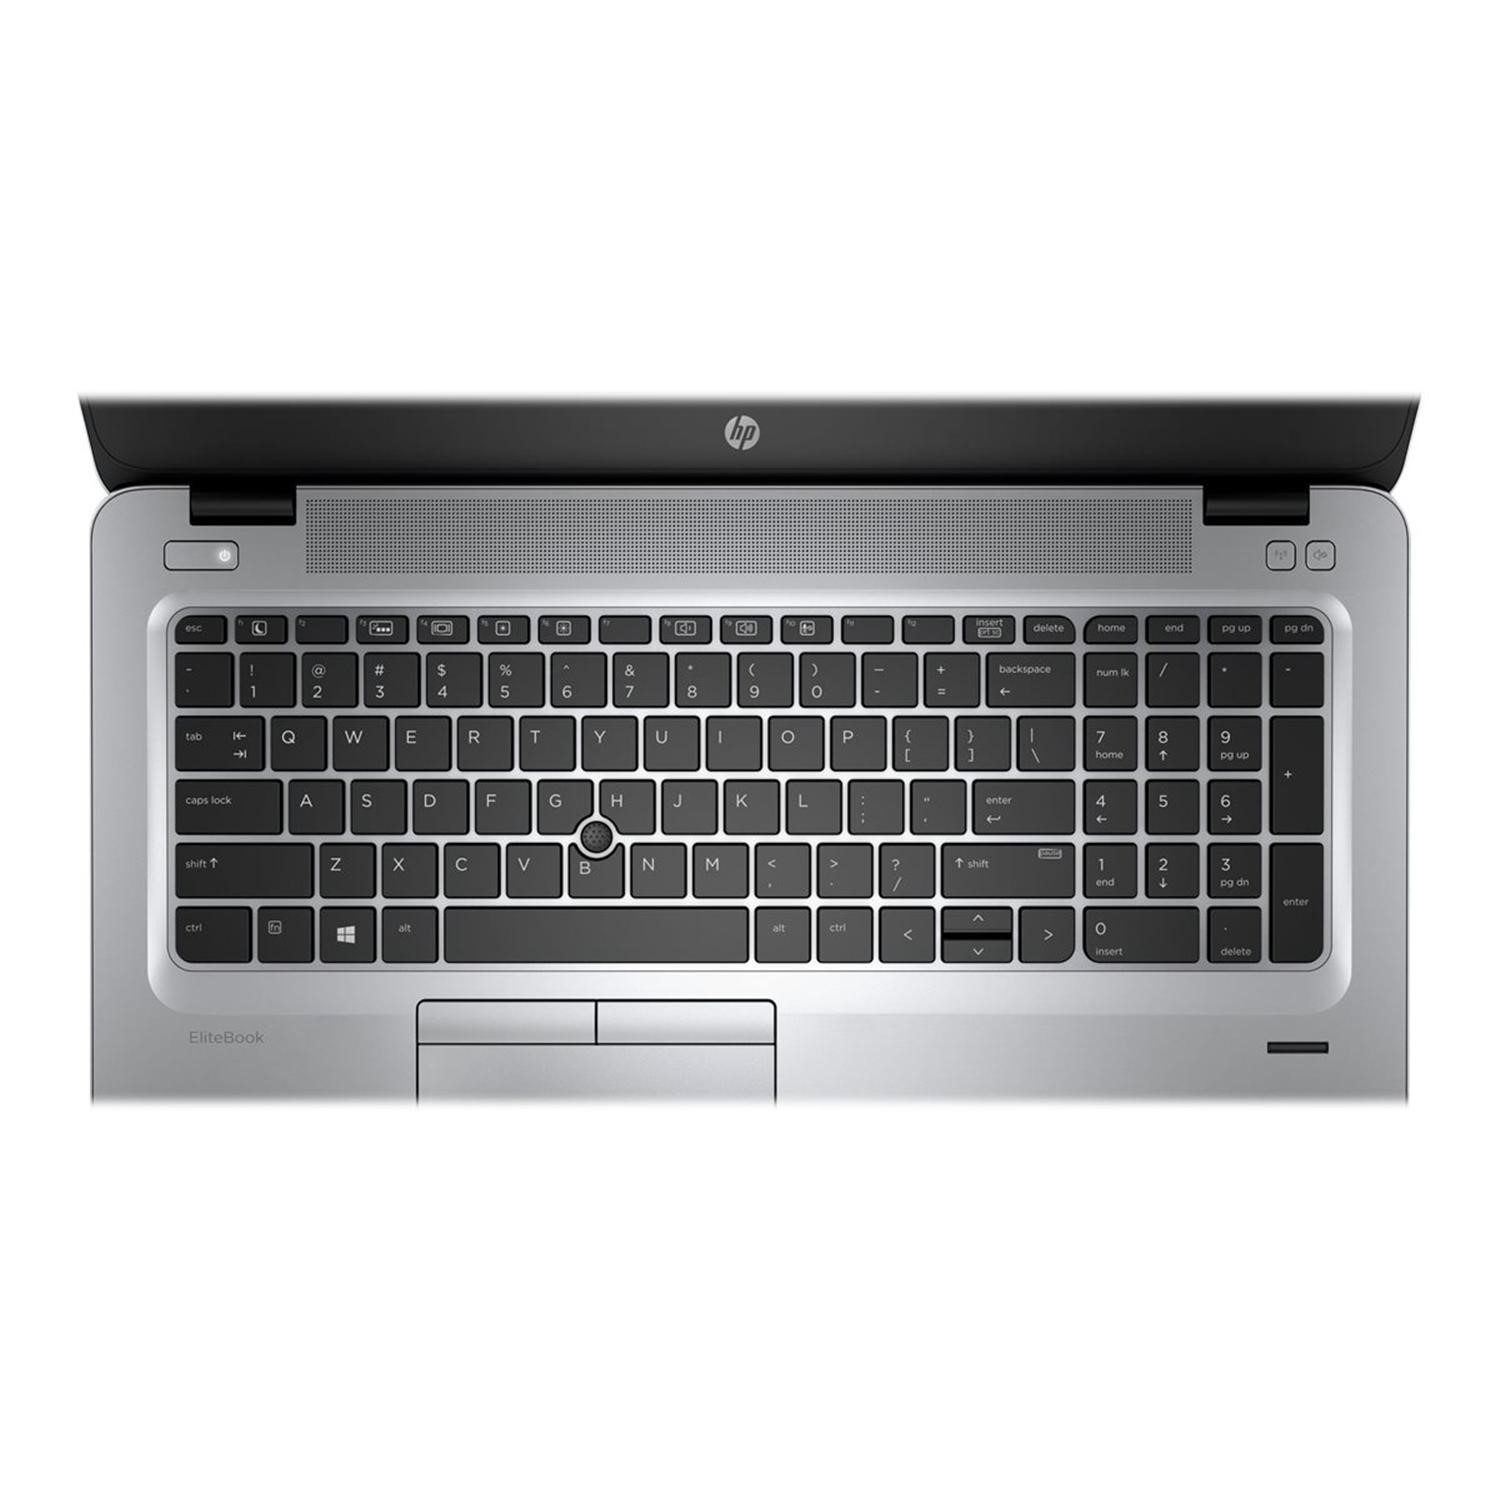 HP EliteBook 850 G5 Core i7 8550U 16GB 512GB 15 6 Inch Windows 10  Professional Laptop